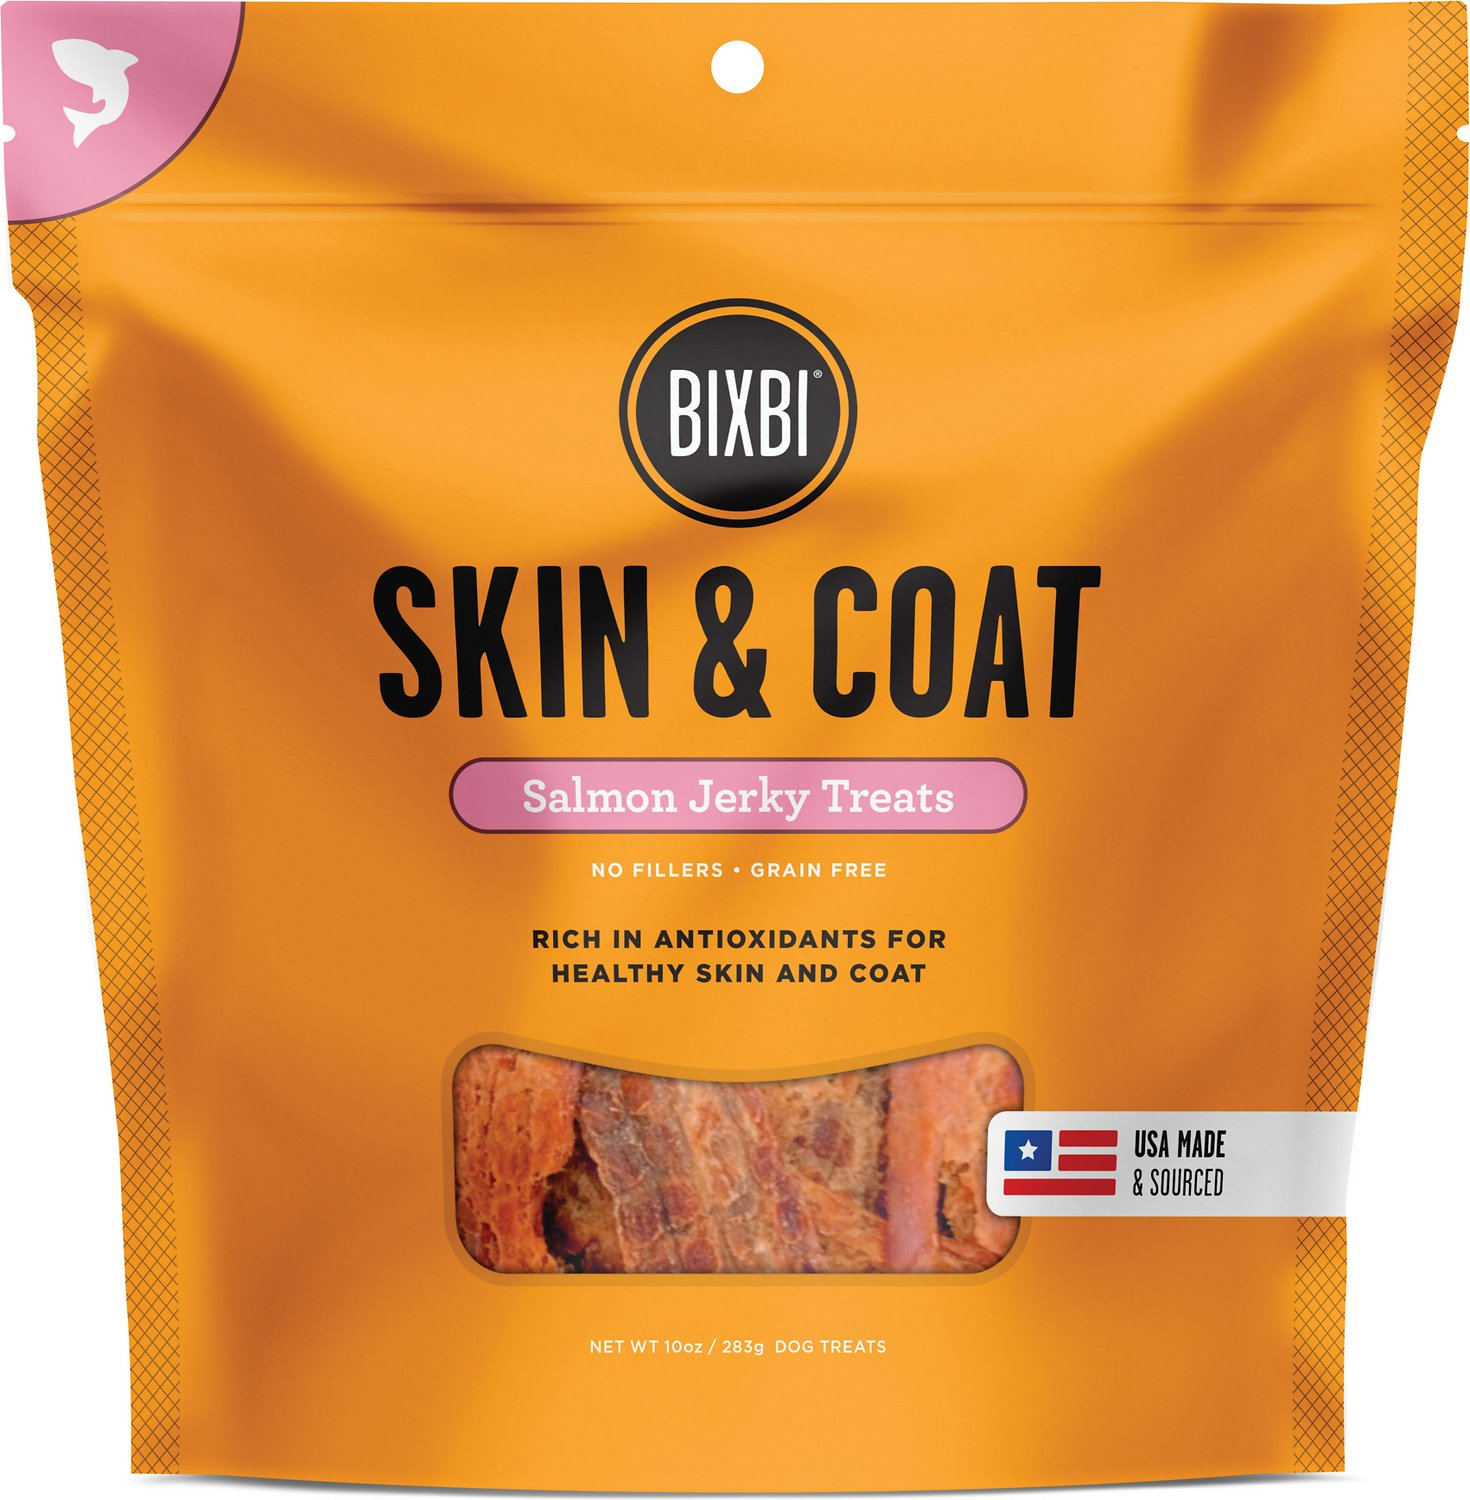 BIXBI Skin & Coat Salmon Jerky Dog Treats, 5-oz bag